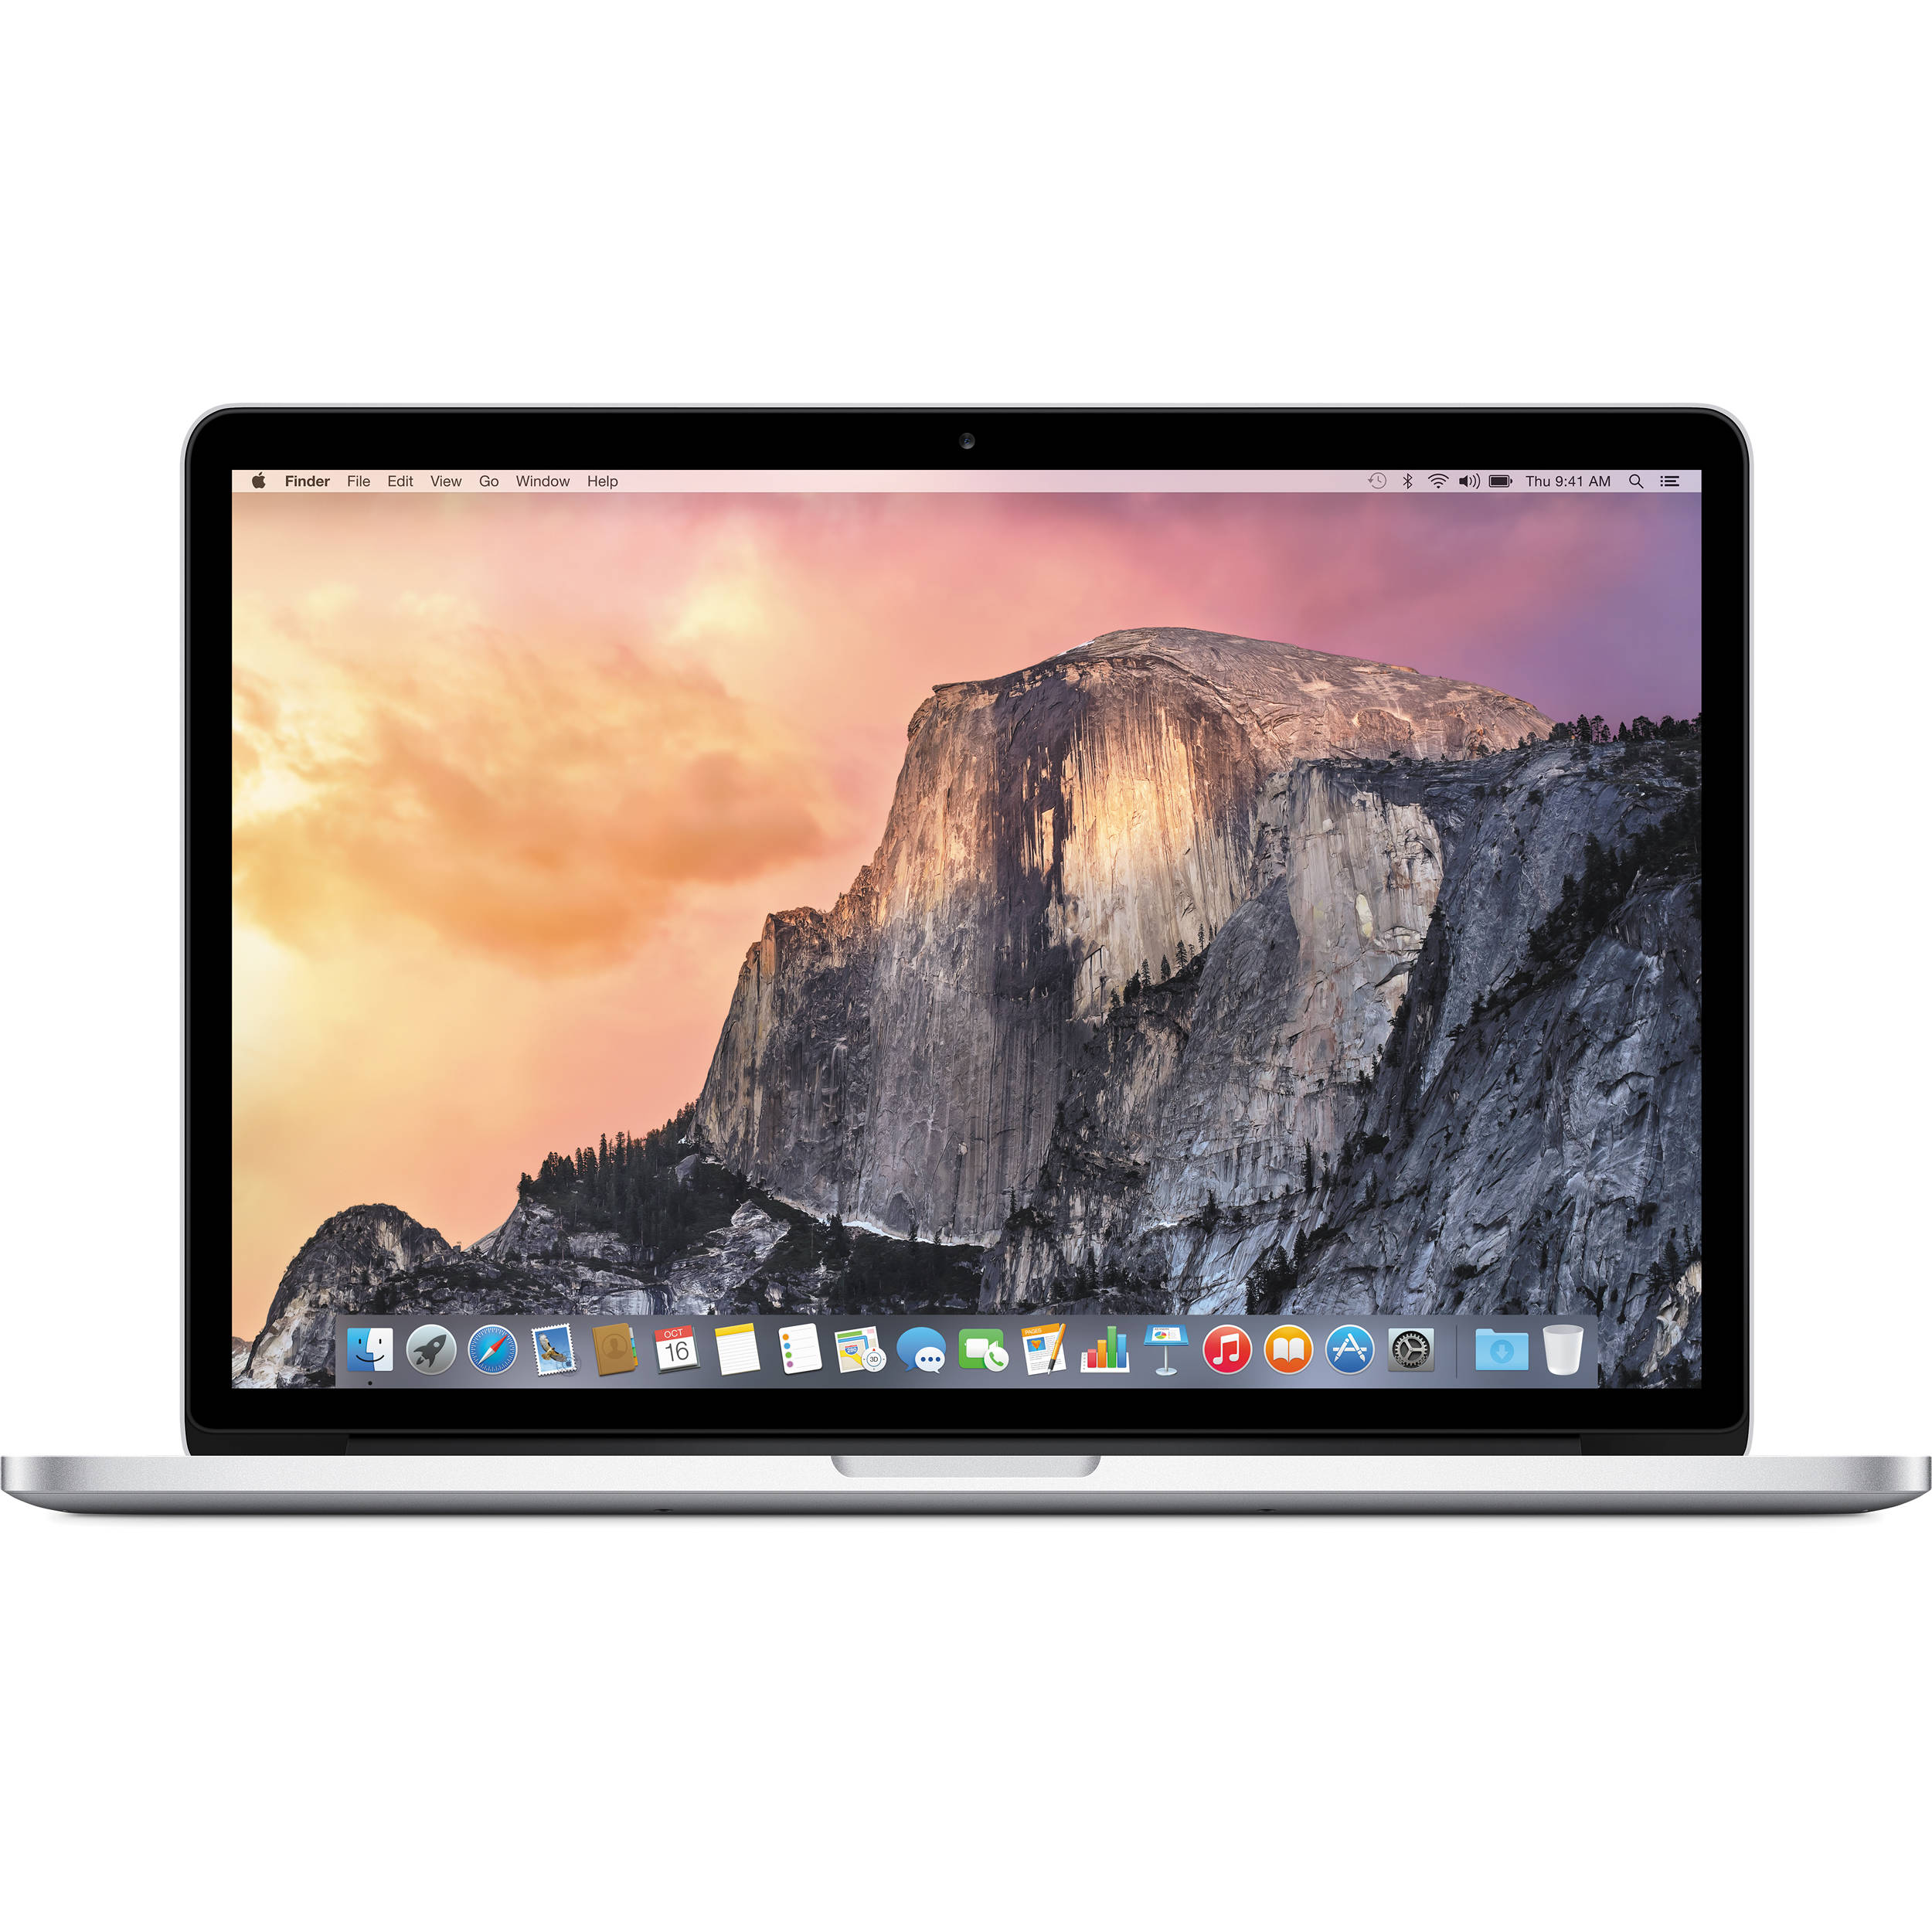 Apple 15 4 macbook pro laptop computer with retina display force touch trackpad mid